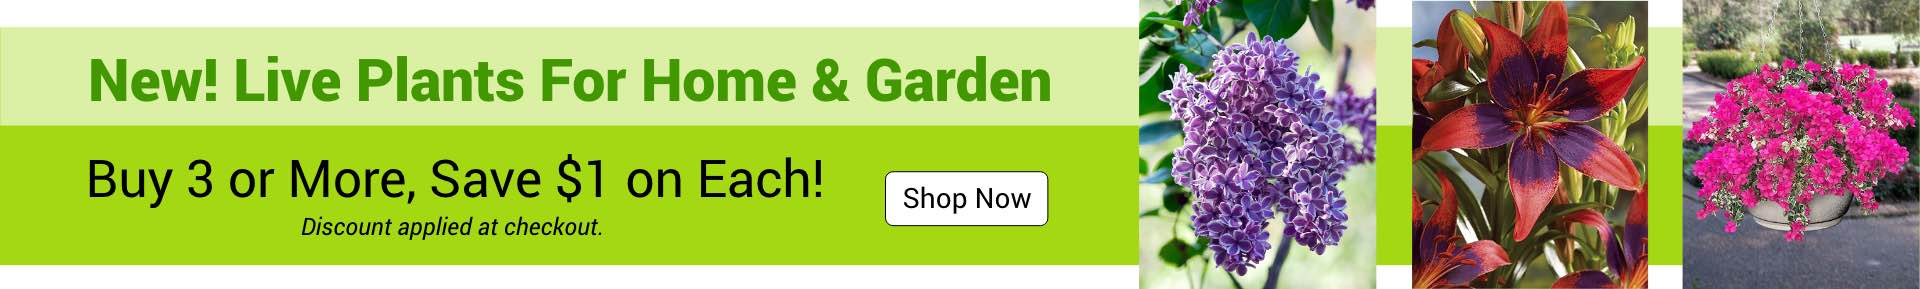 Live Plants For Home & Garden Shop Now